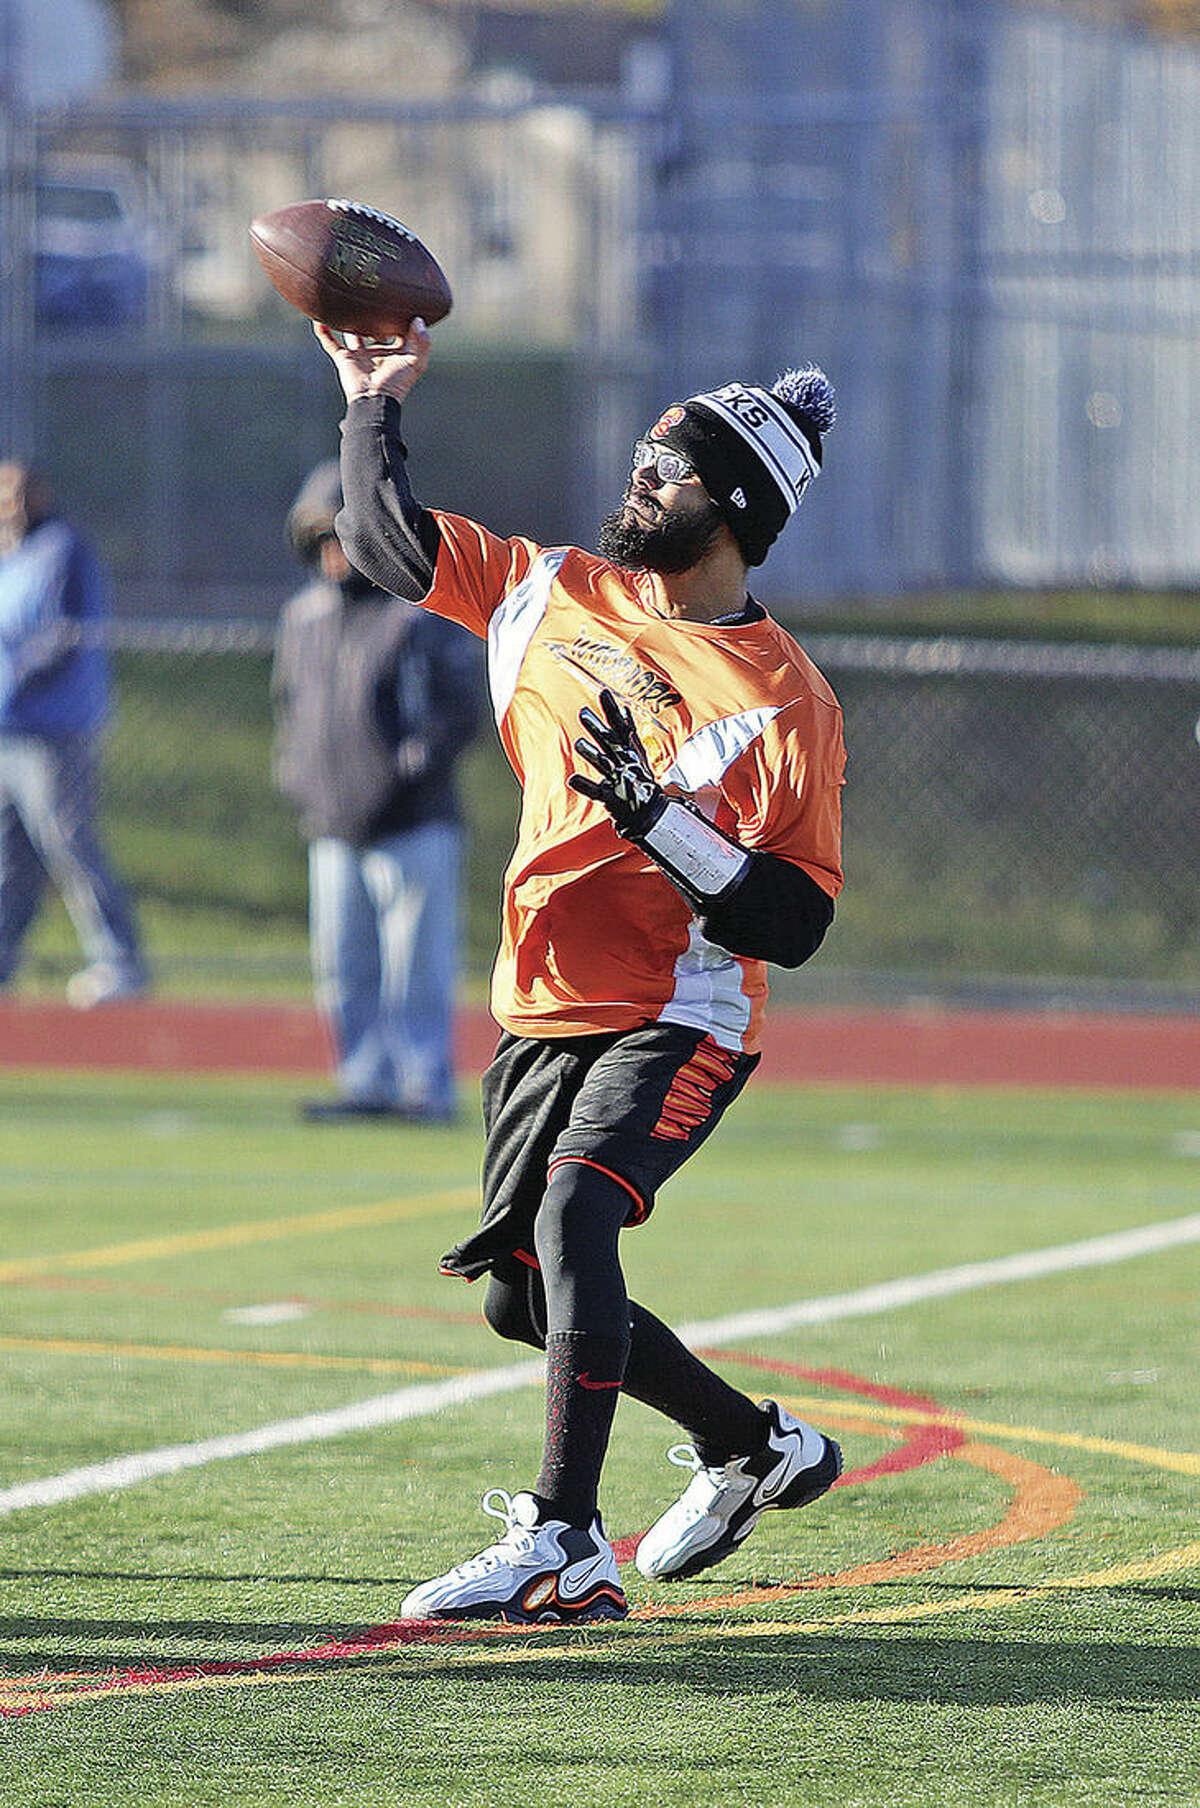 Jose Gonzales from The Warriors makes a pass during the Norwalk Rec Championship Football game against M2 & Floody Landscaping at the Norwalk High School football field Sunday morning. Hour Photo / Danielle Calloway